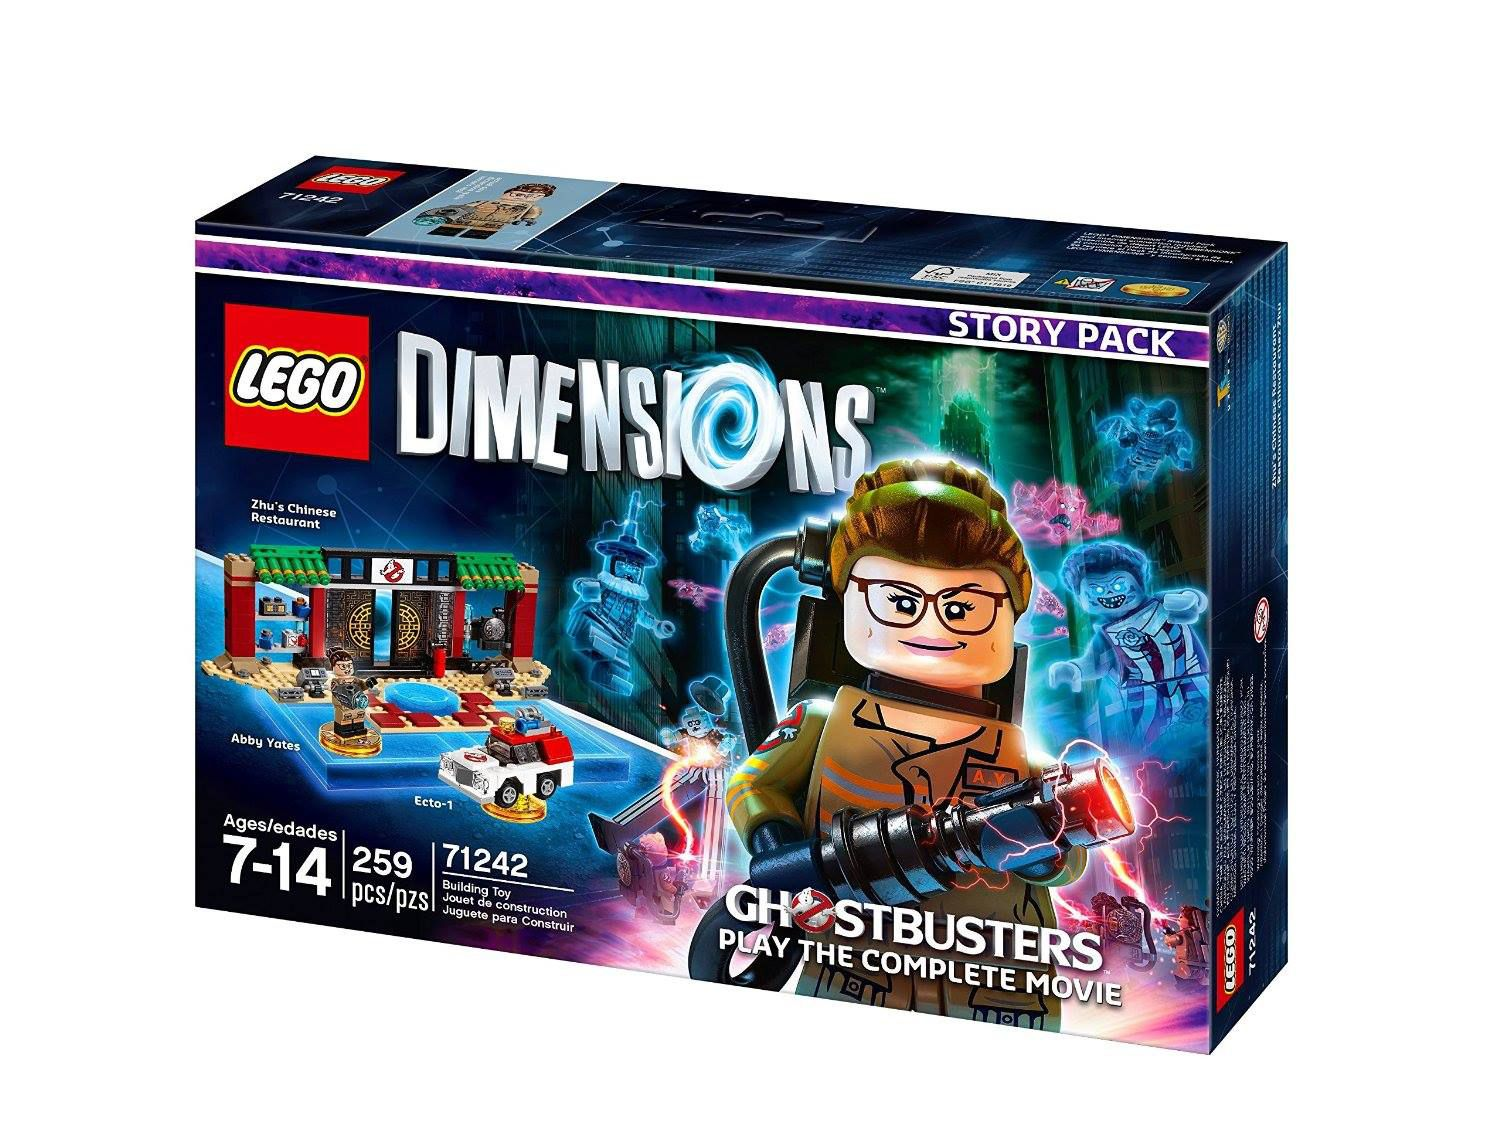 LEGO Dimensions 71242 Story Pack New Ghostbusters LEGO_DIMENSIONS_71242_Ghostbusters-Story_Pack-01.jpg